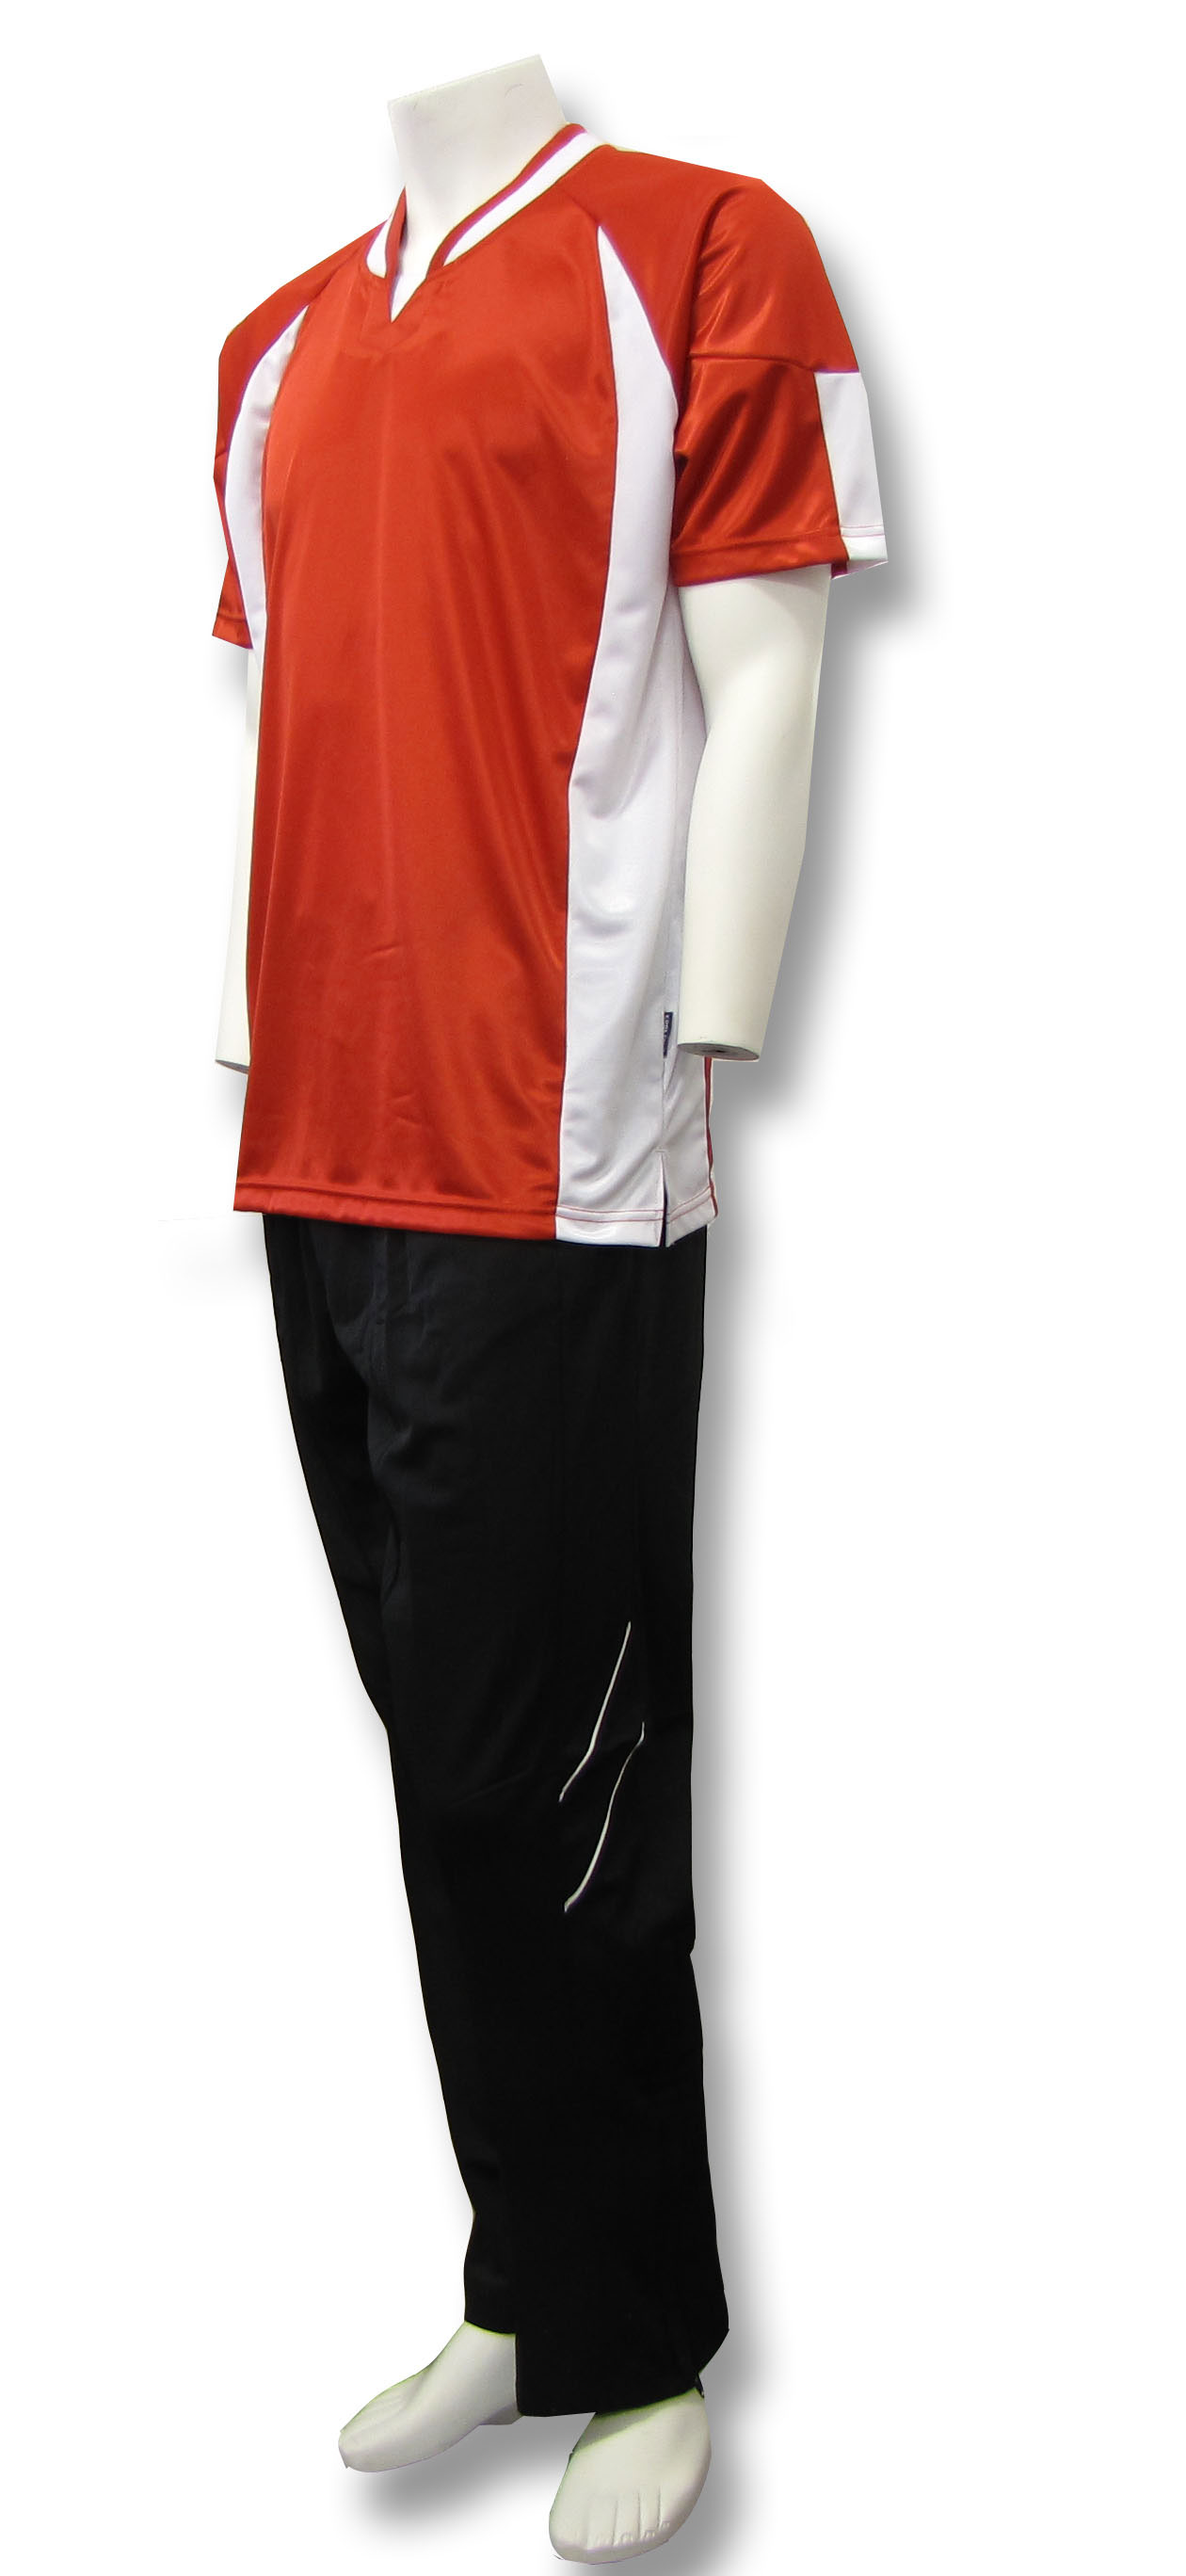 Basketball warm ups in red/white/black by Code Four Athletics